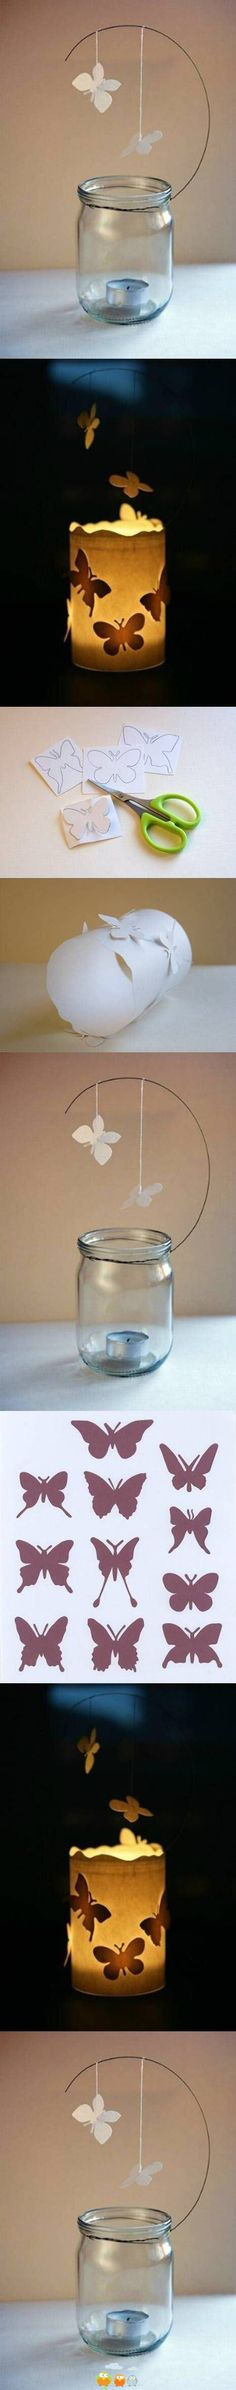 Butterflies on and above jar candle holder